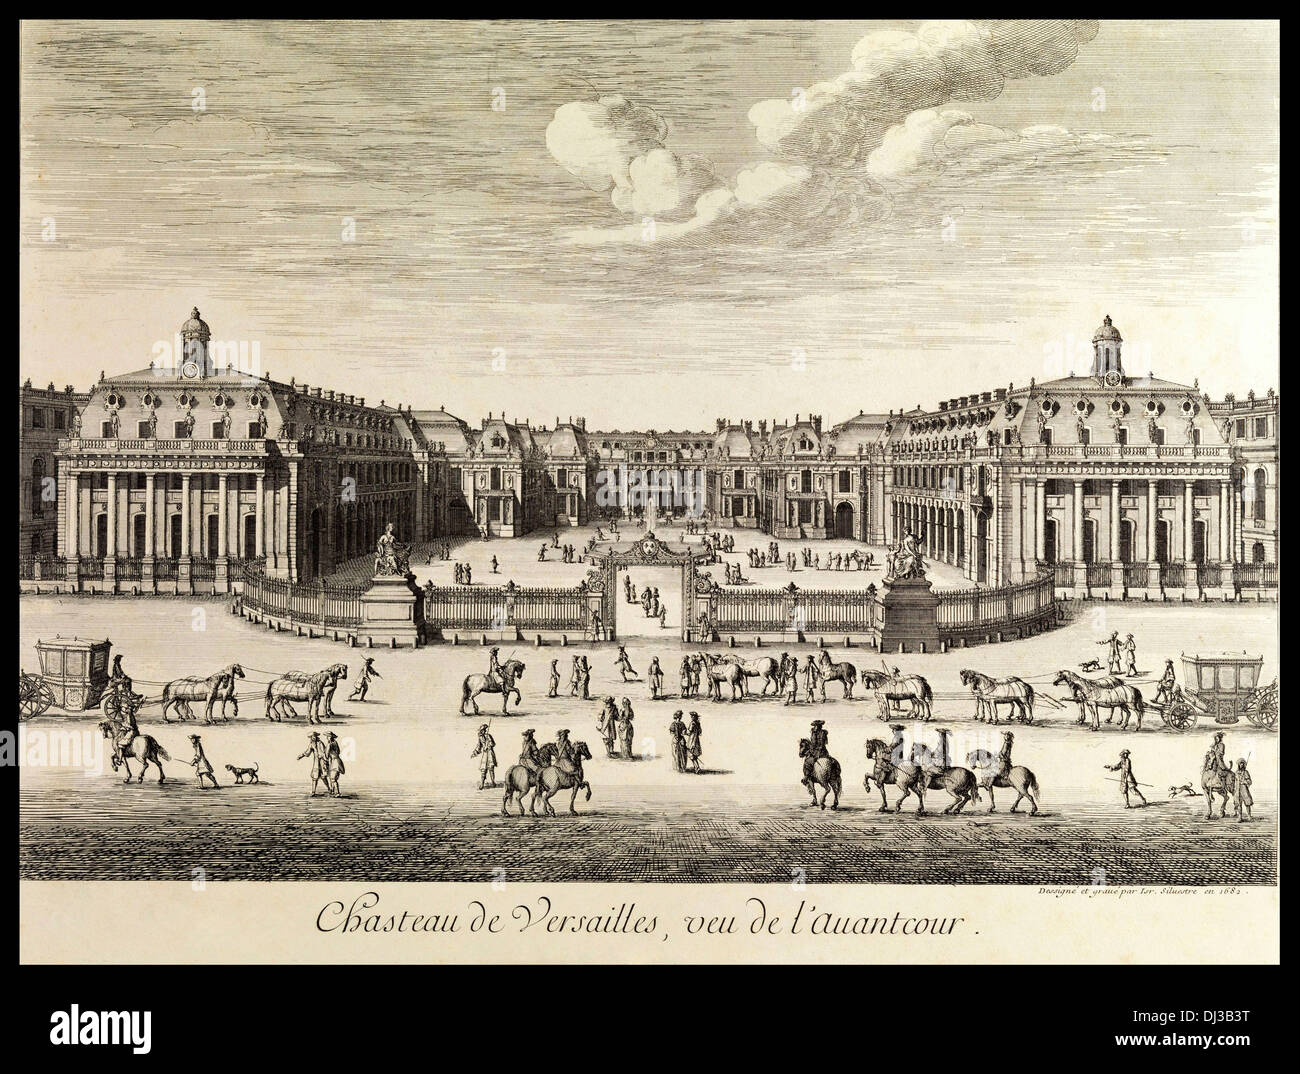 Chateau de Versailles 1682 by Israel Silvestre a prolific French etcher and print dealer - Stock Image